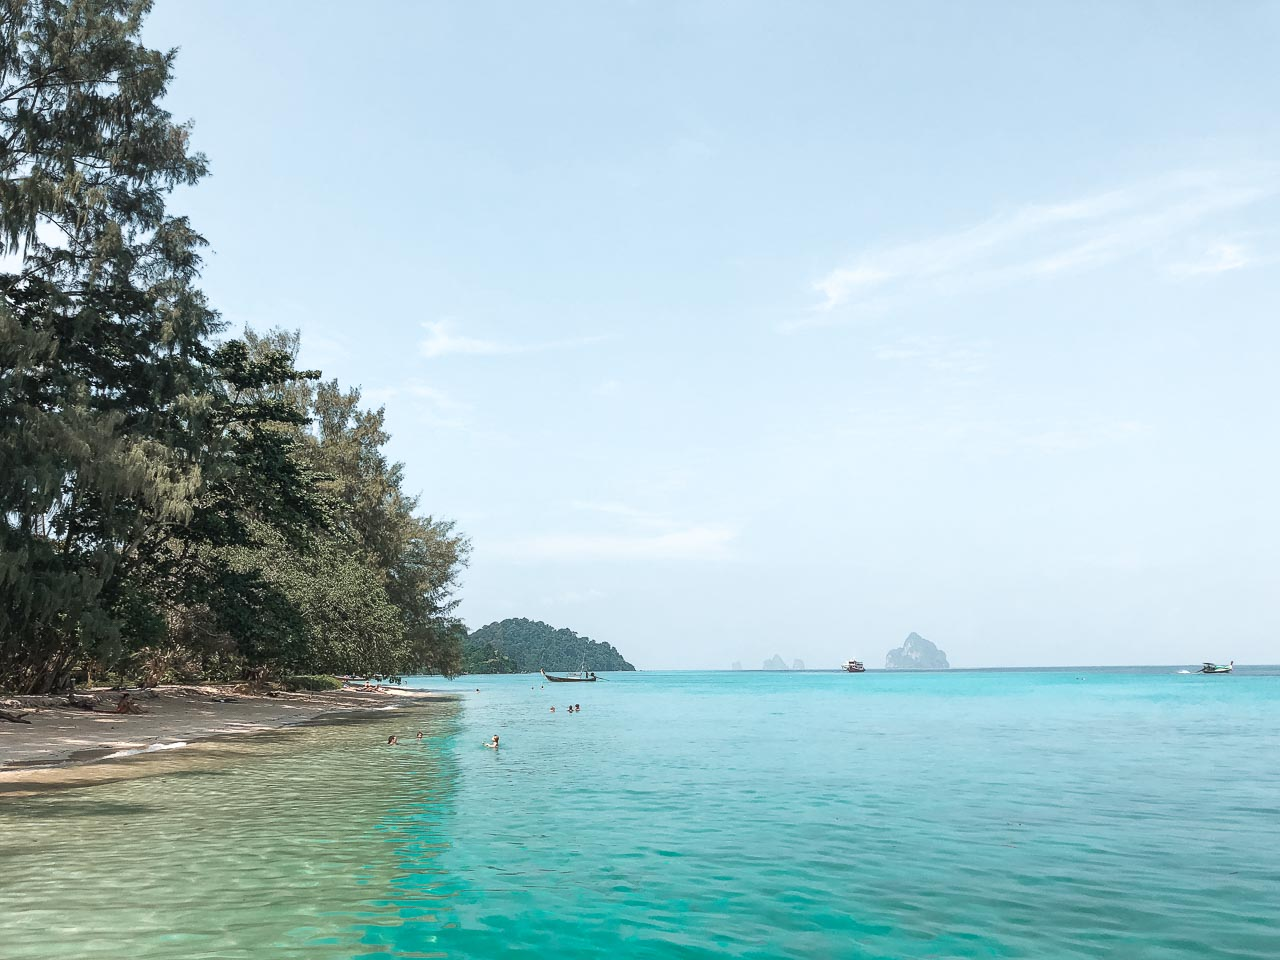 Crystal-clear waters of Koh Kradan